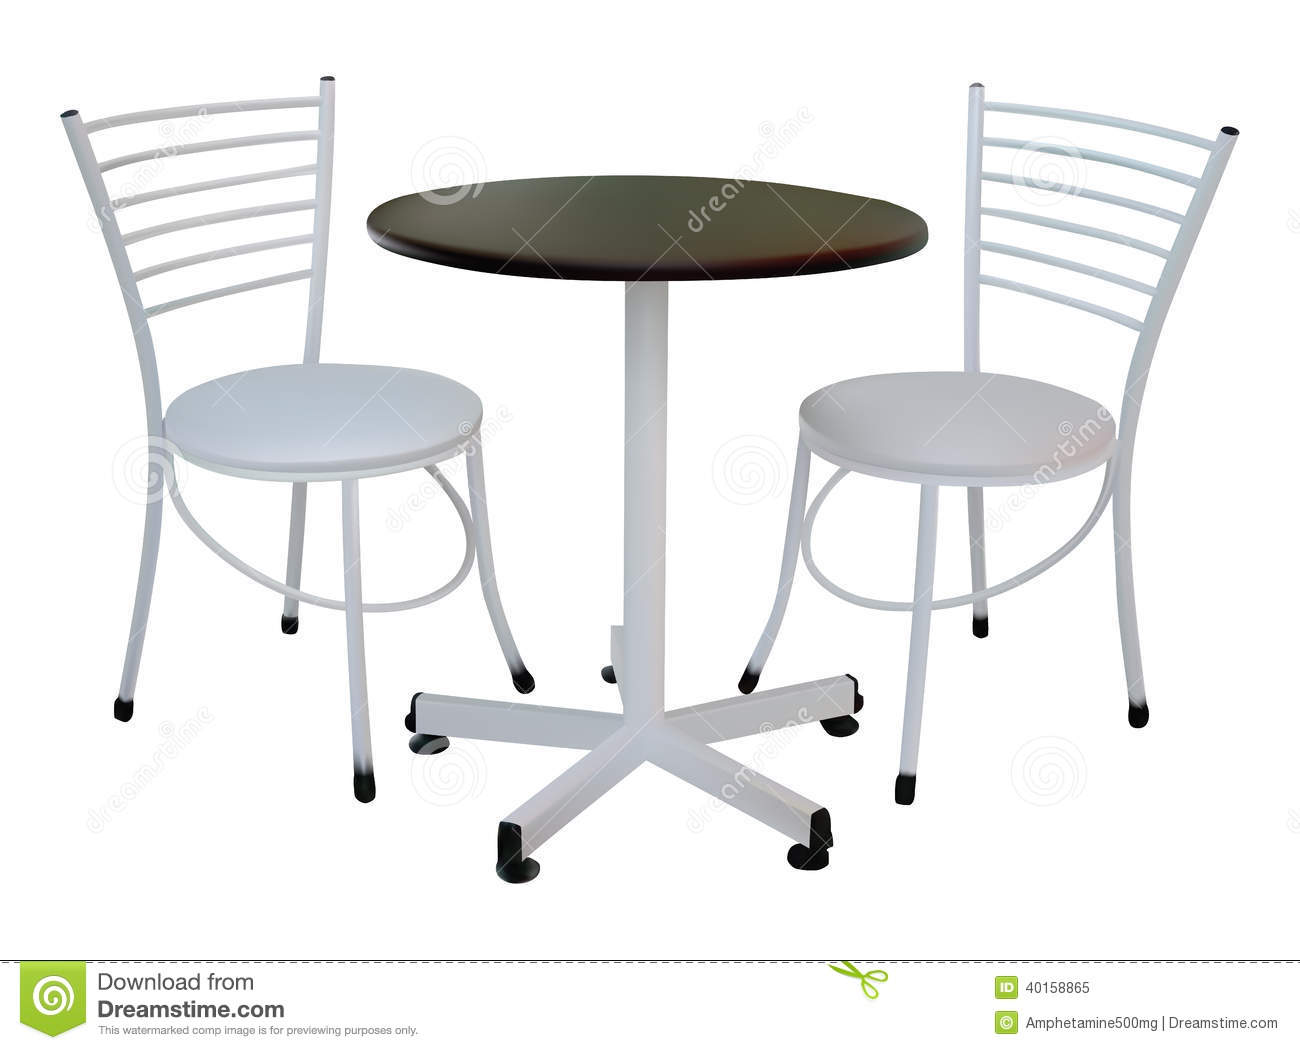 Table and Chair Illustration